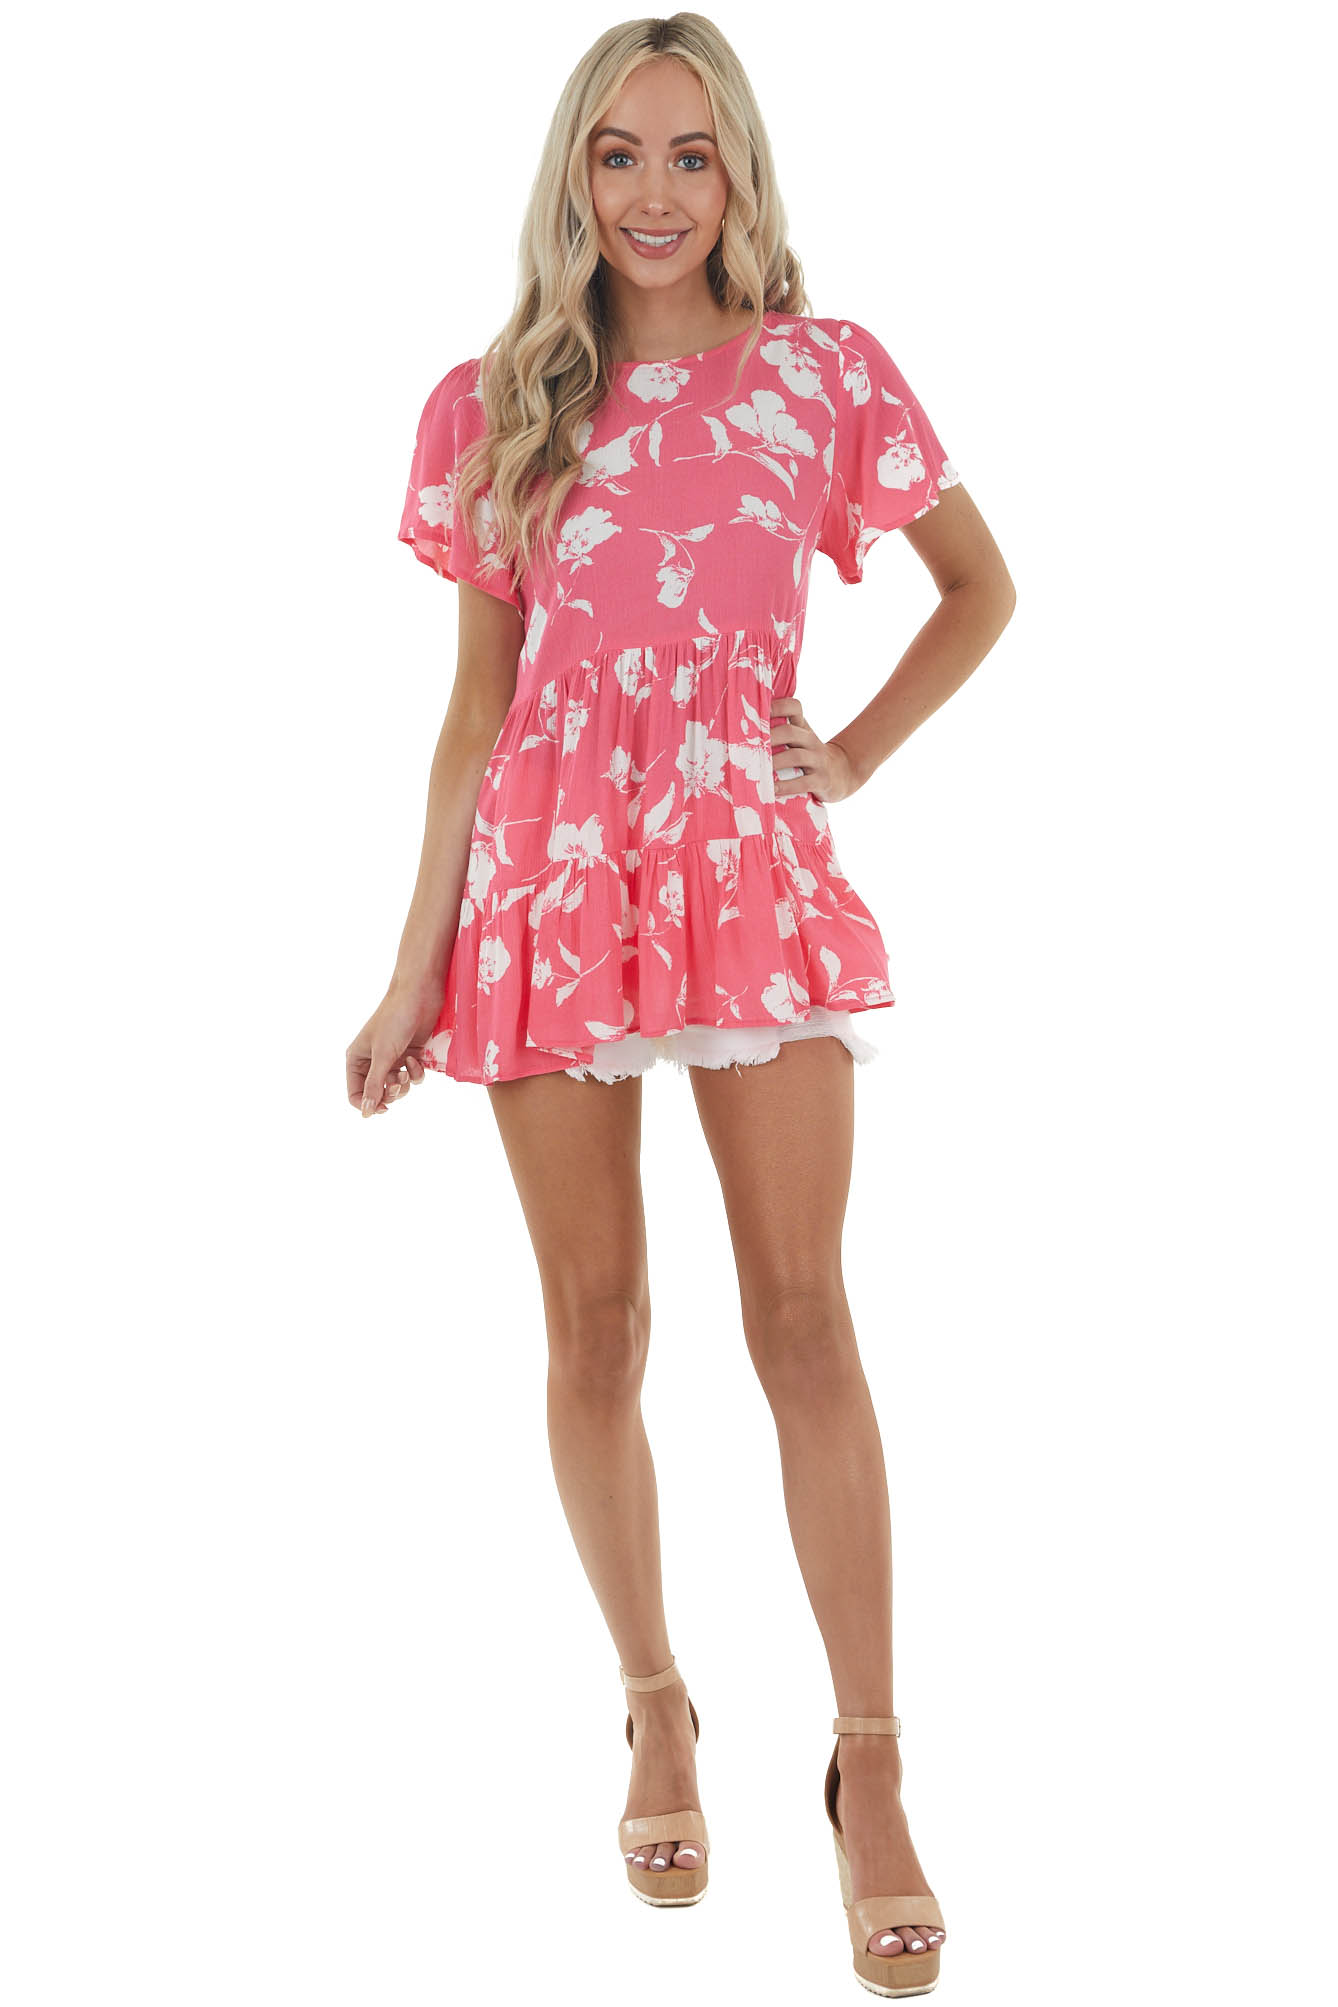 Hot Pink Short Sleeve Drop Waist Blouse with Floral Print